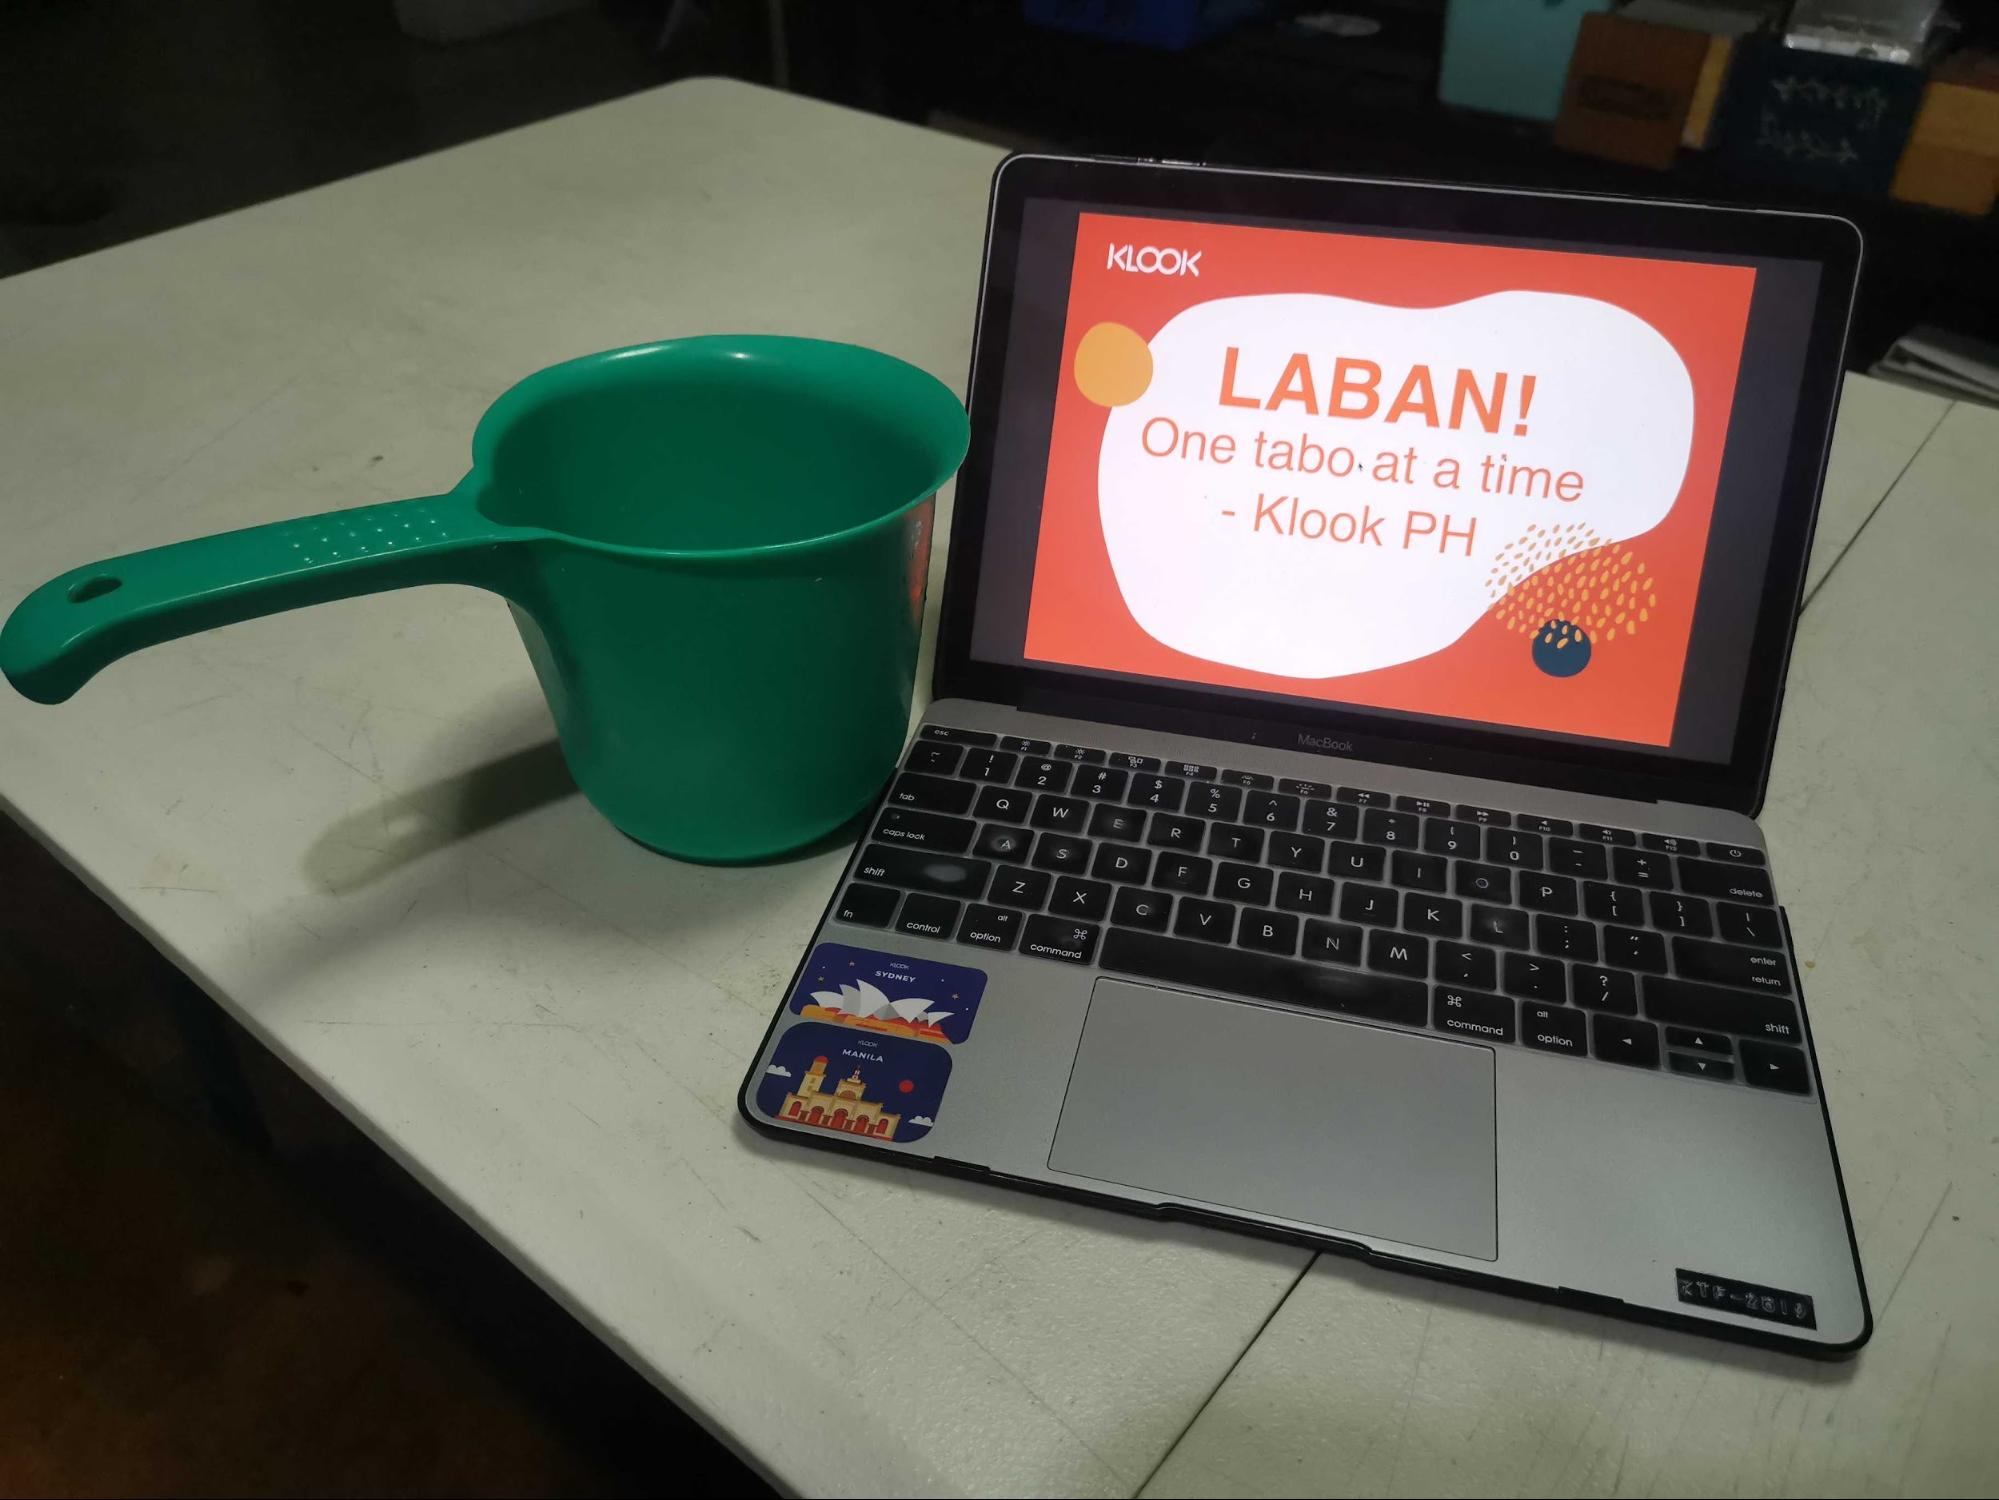 Tabo from the Philippines